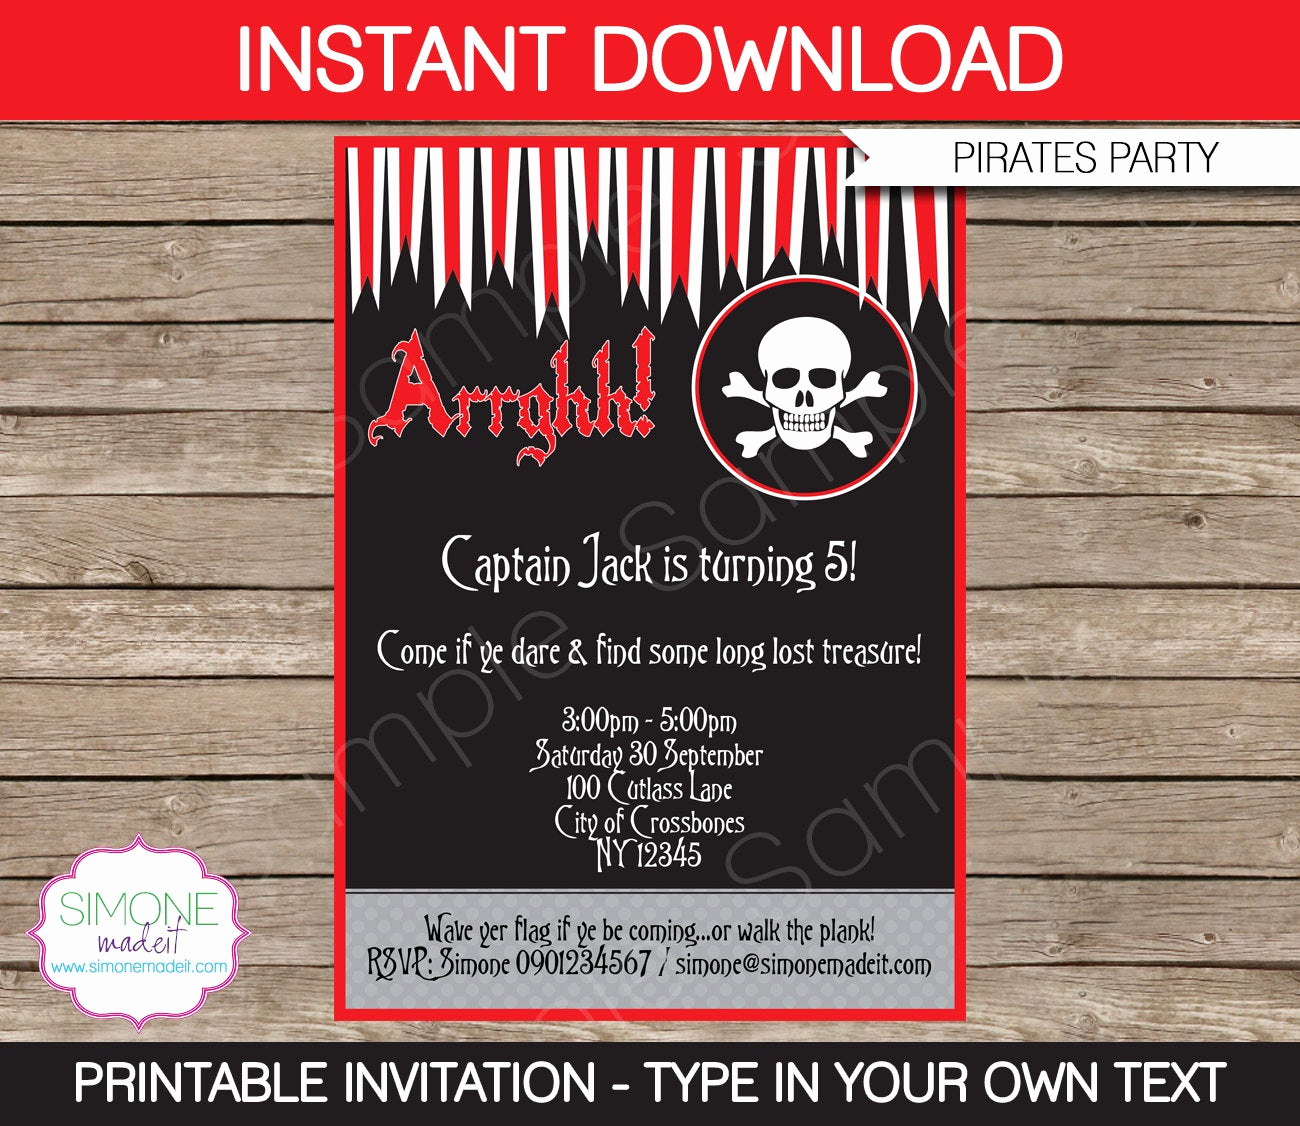 Pirate Party Invitation Templates Elegant Pirate Invitation Template Birthday Party Instant Download